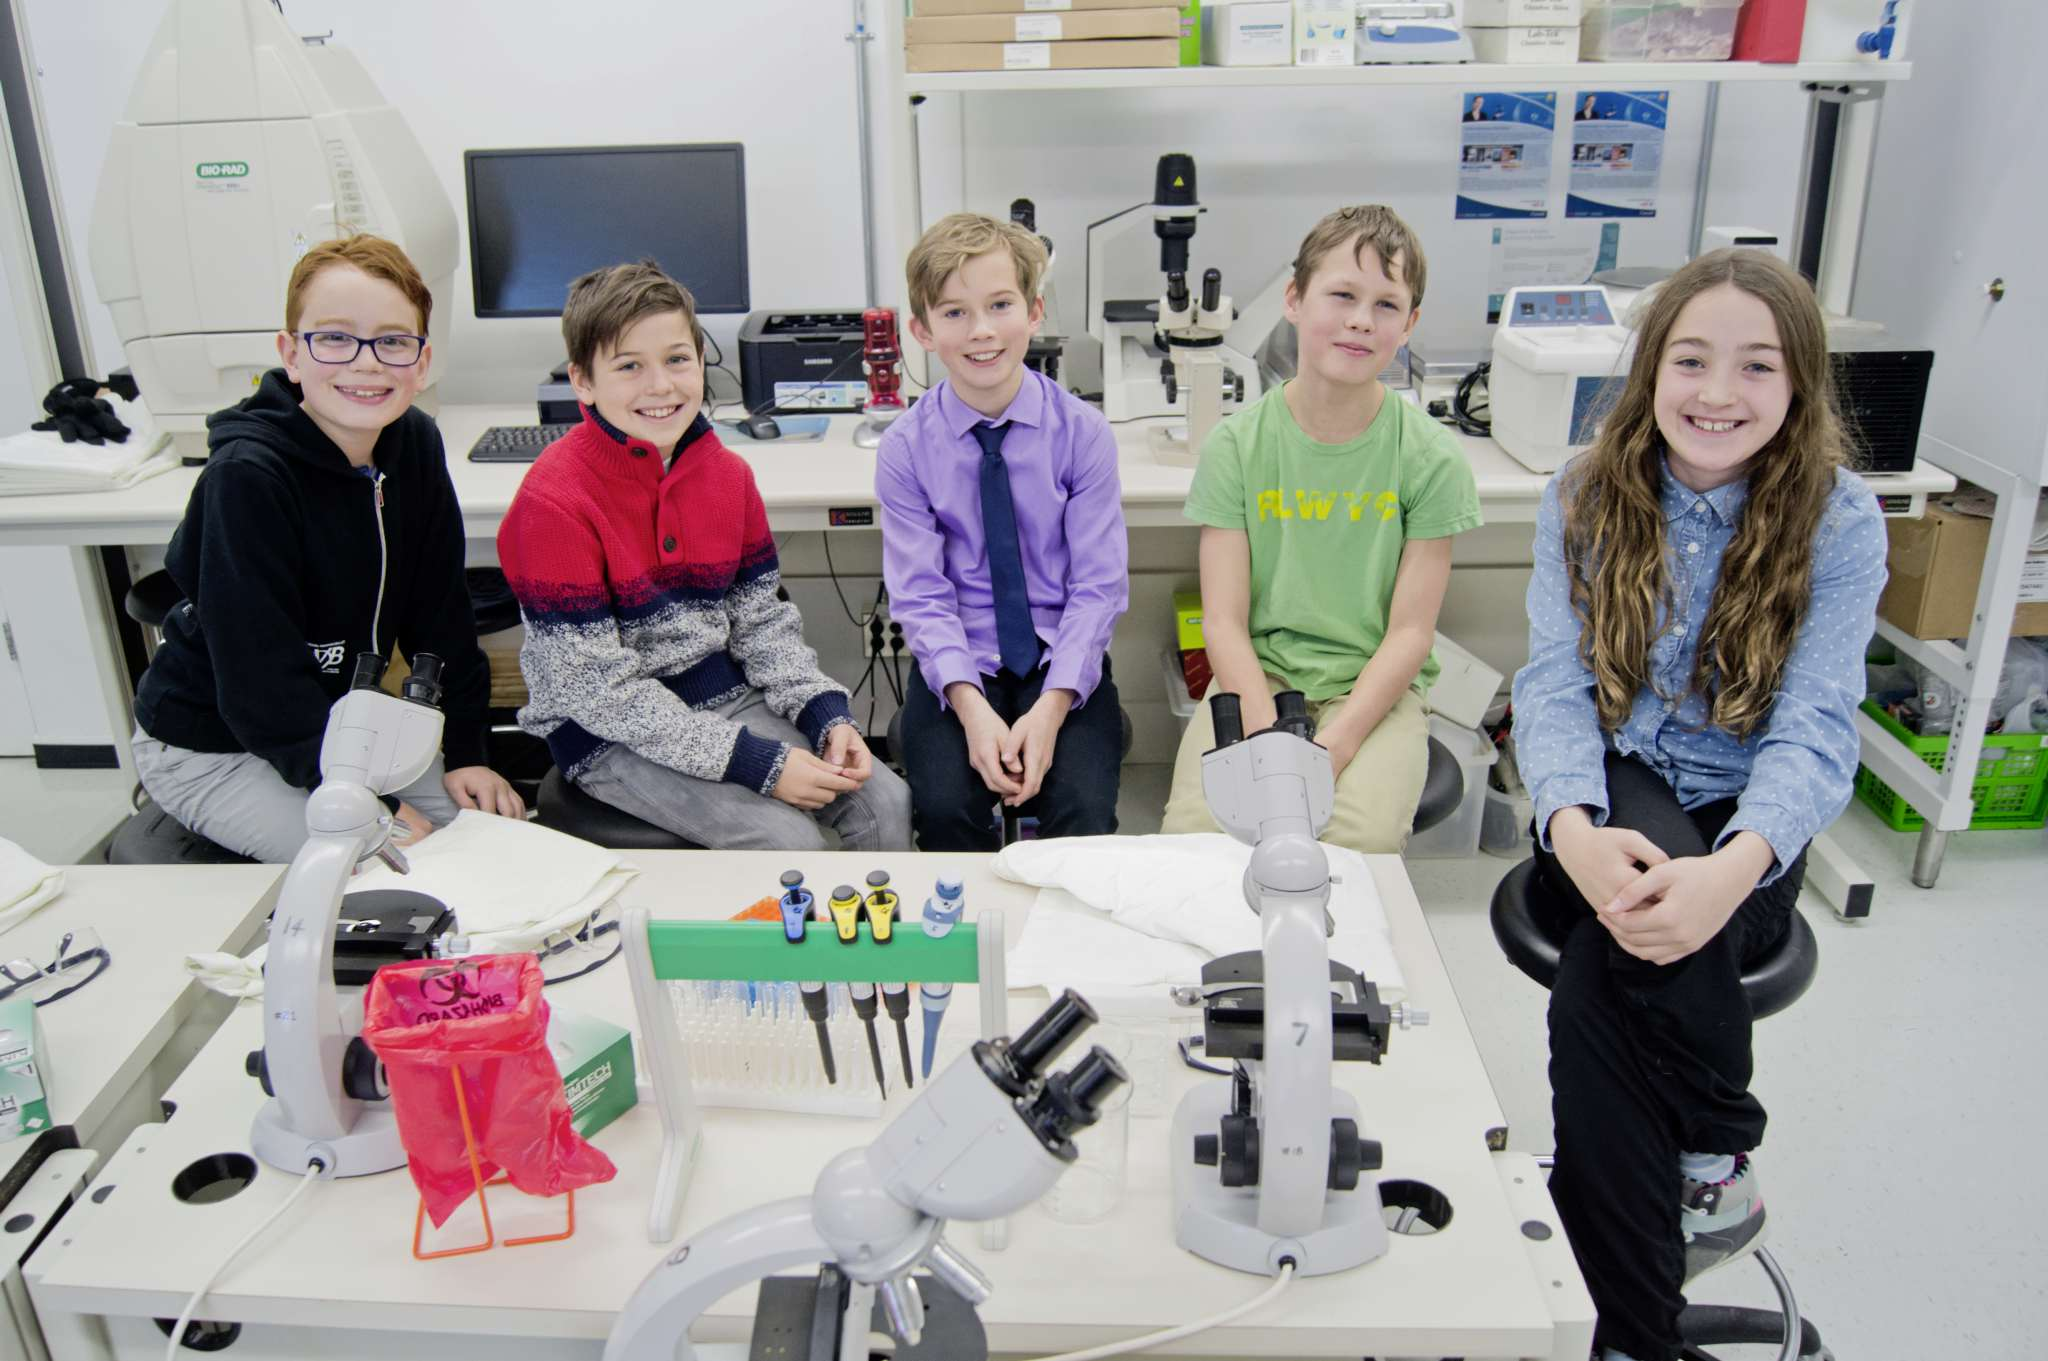 From left, Grosvenor School students Charlie Buehler, Keaton Fish, Merrik Williamson, Kale Peterson, and Quinn McMullan have designed an experiment that will be tested aboard the International Space Station.